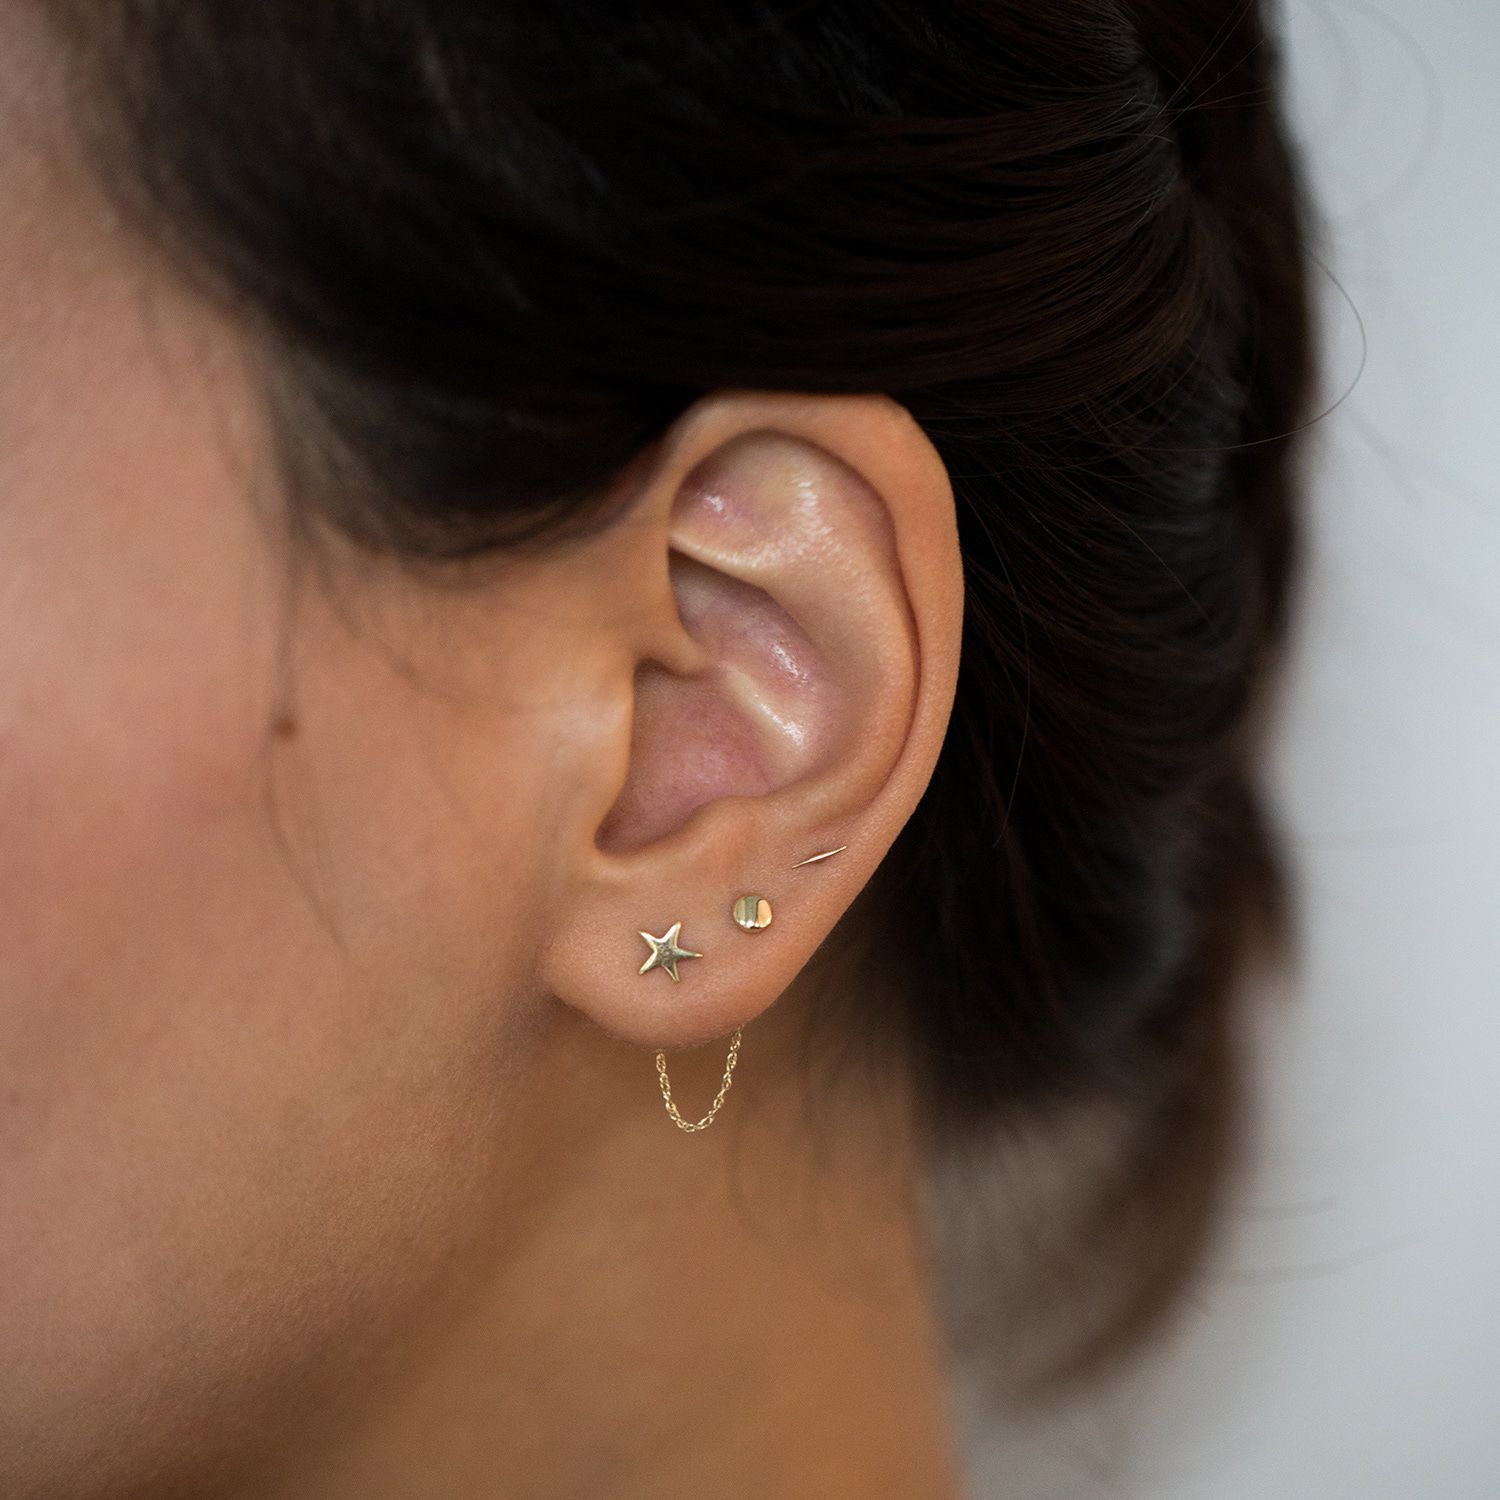 The Claribel Earring Chain, $48 @catbirdnyc.com